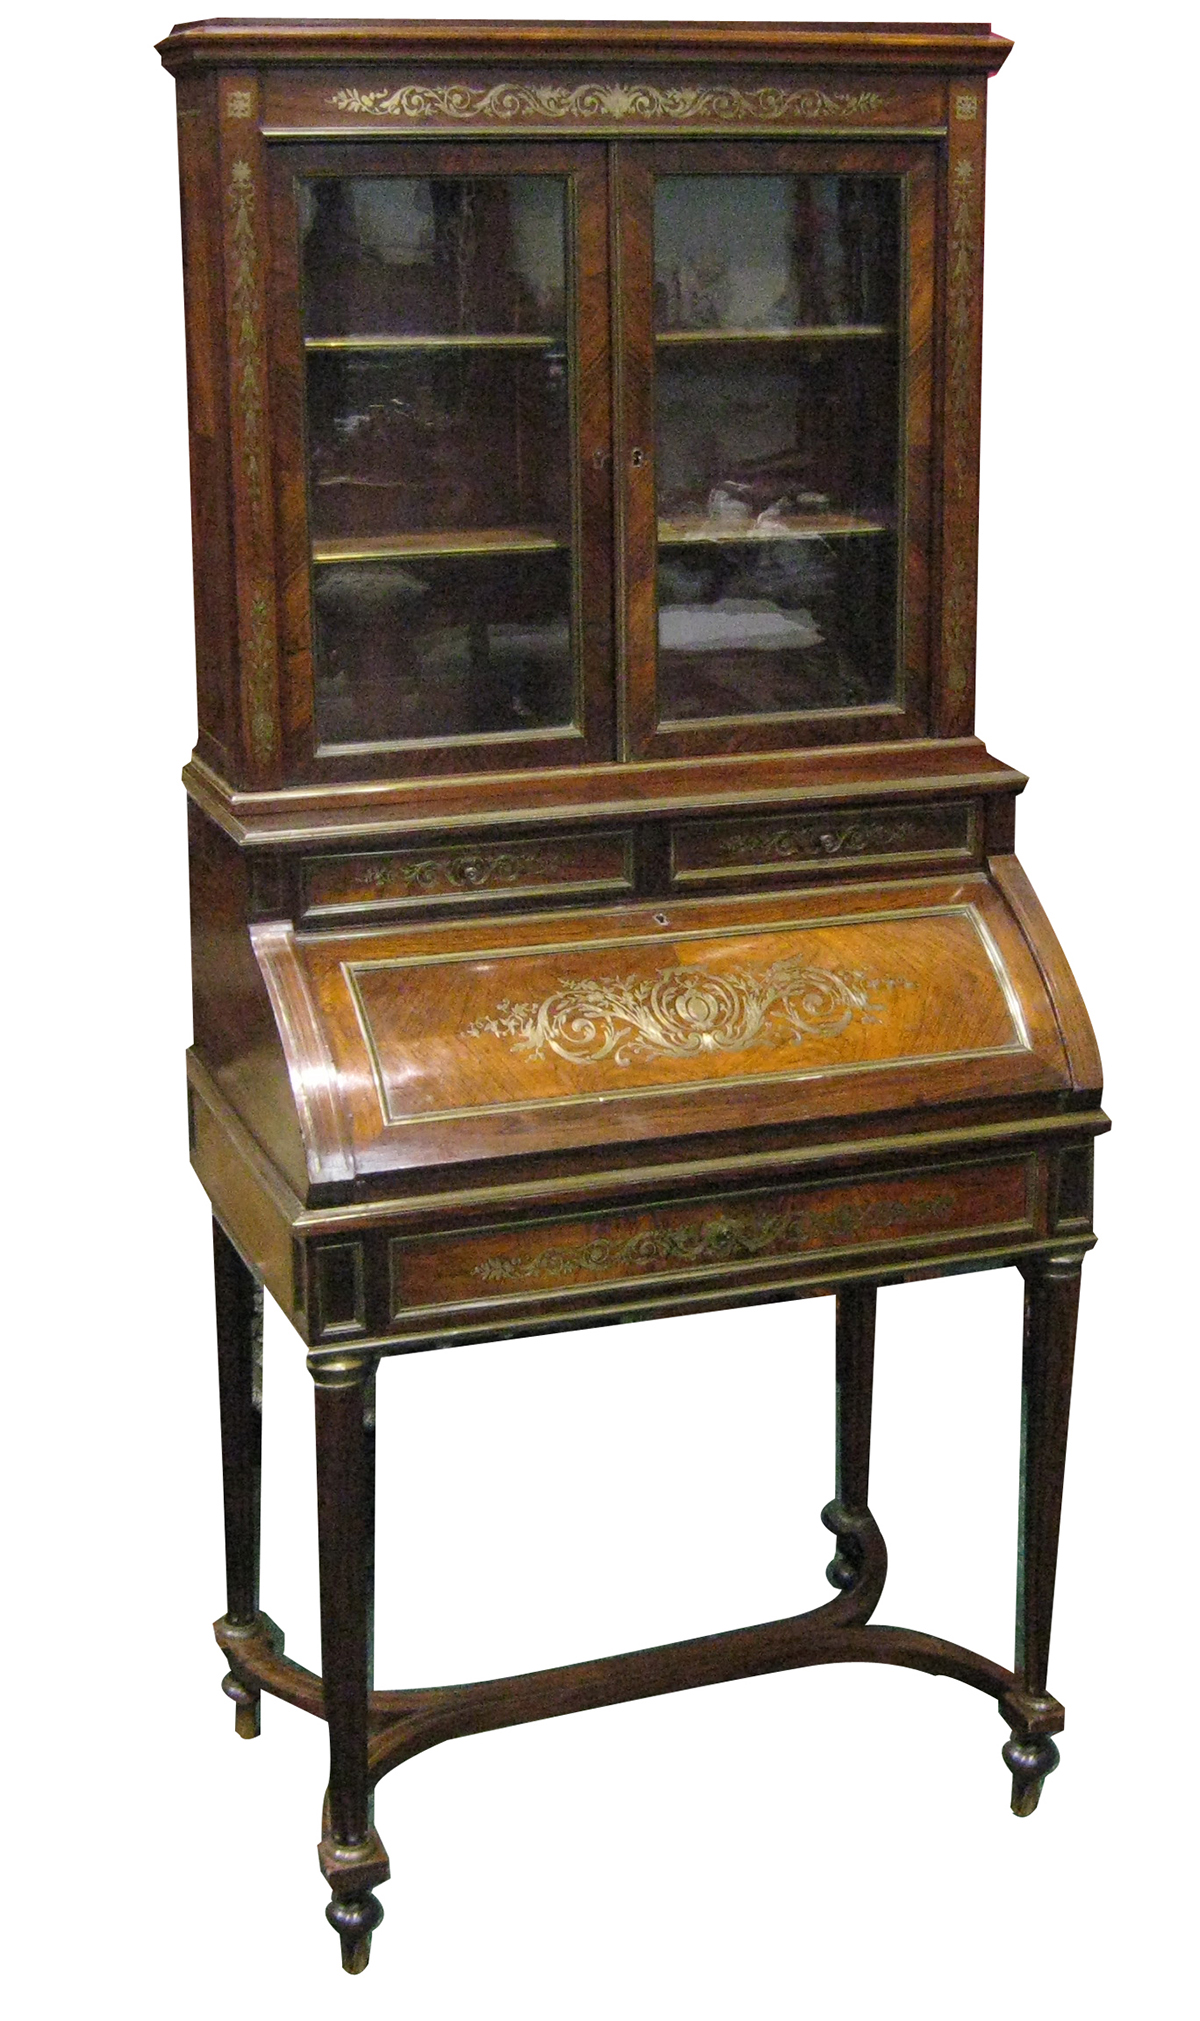 Antique Furniture Auctions Related Keywords & Suggestions